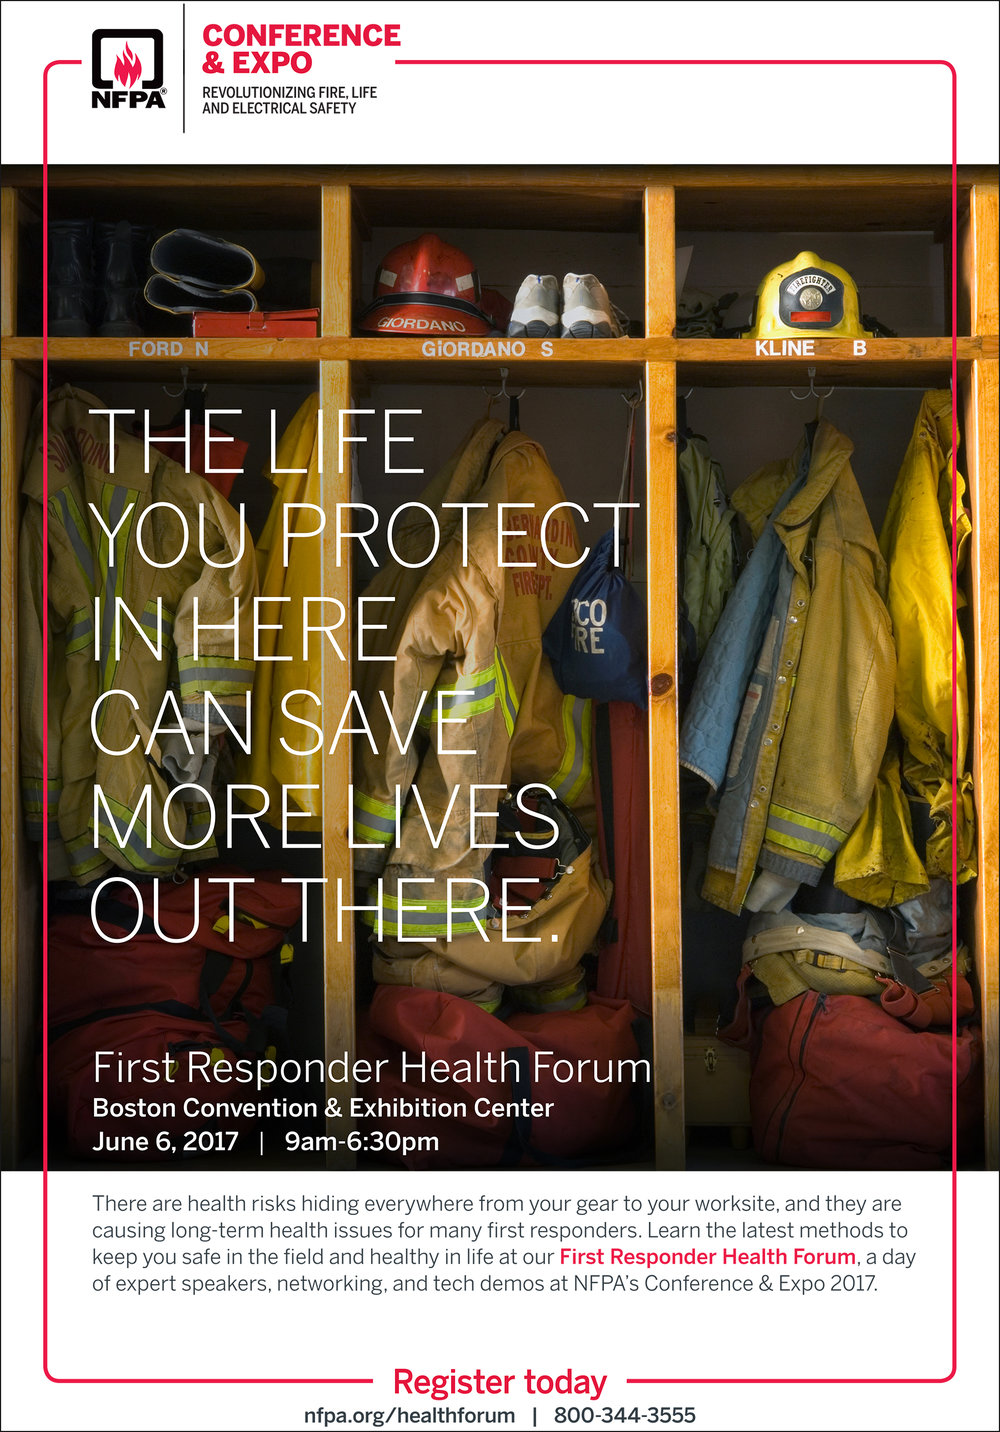 17-NFPA-0022_C&E First Responder Promotion_poster_03272017.jpg